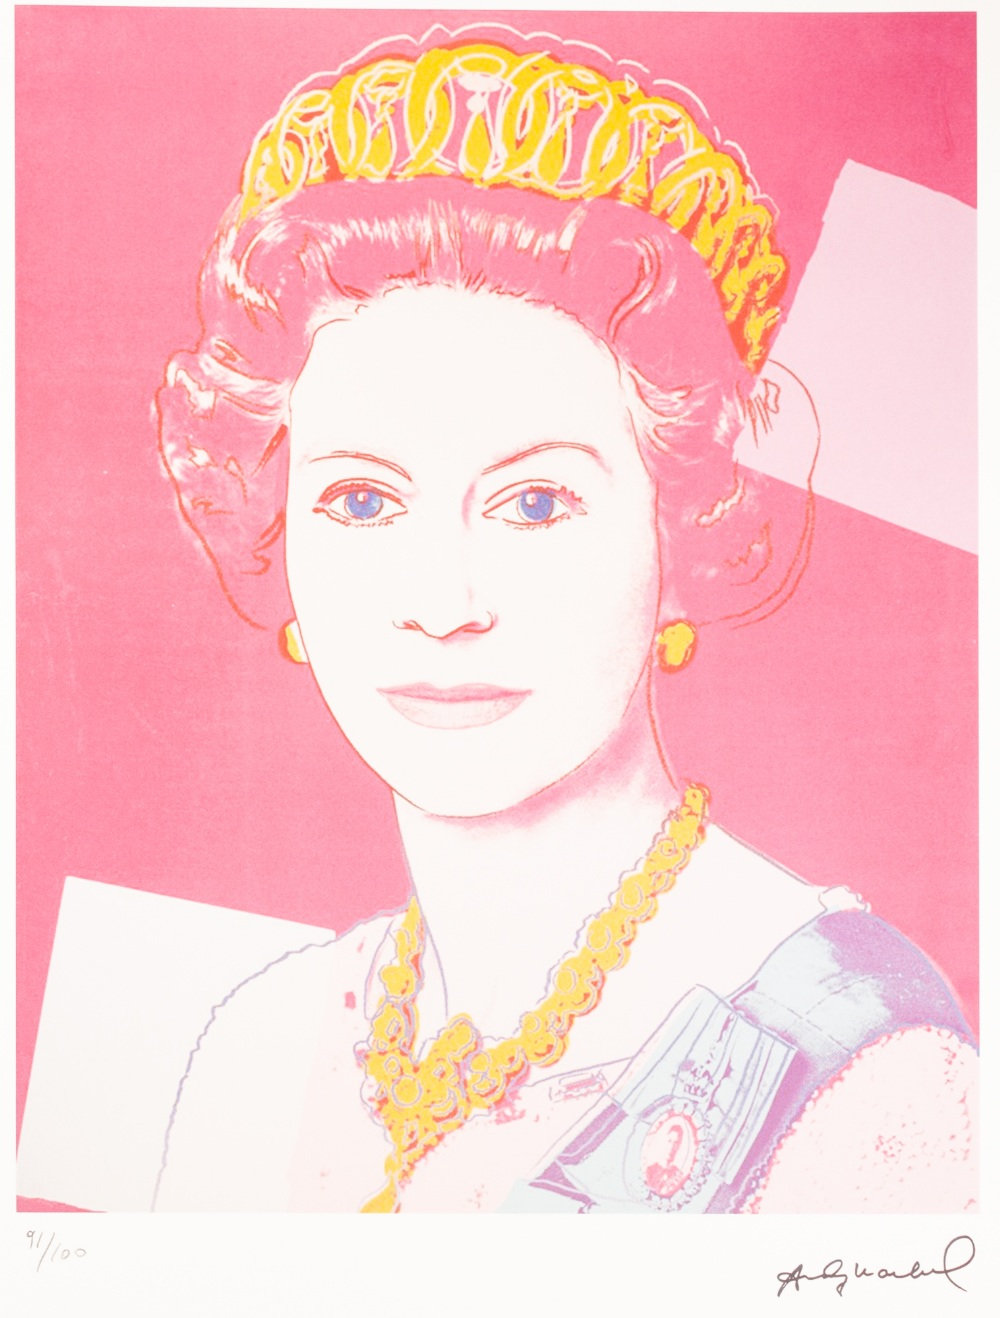 Lot 191 - ANDY WARHOL (AMERICAN 1928 - 1987) COLOURED LITHGRAPHIC PRINT ON ARCHES PAPER 'Queen Elizabeth II'